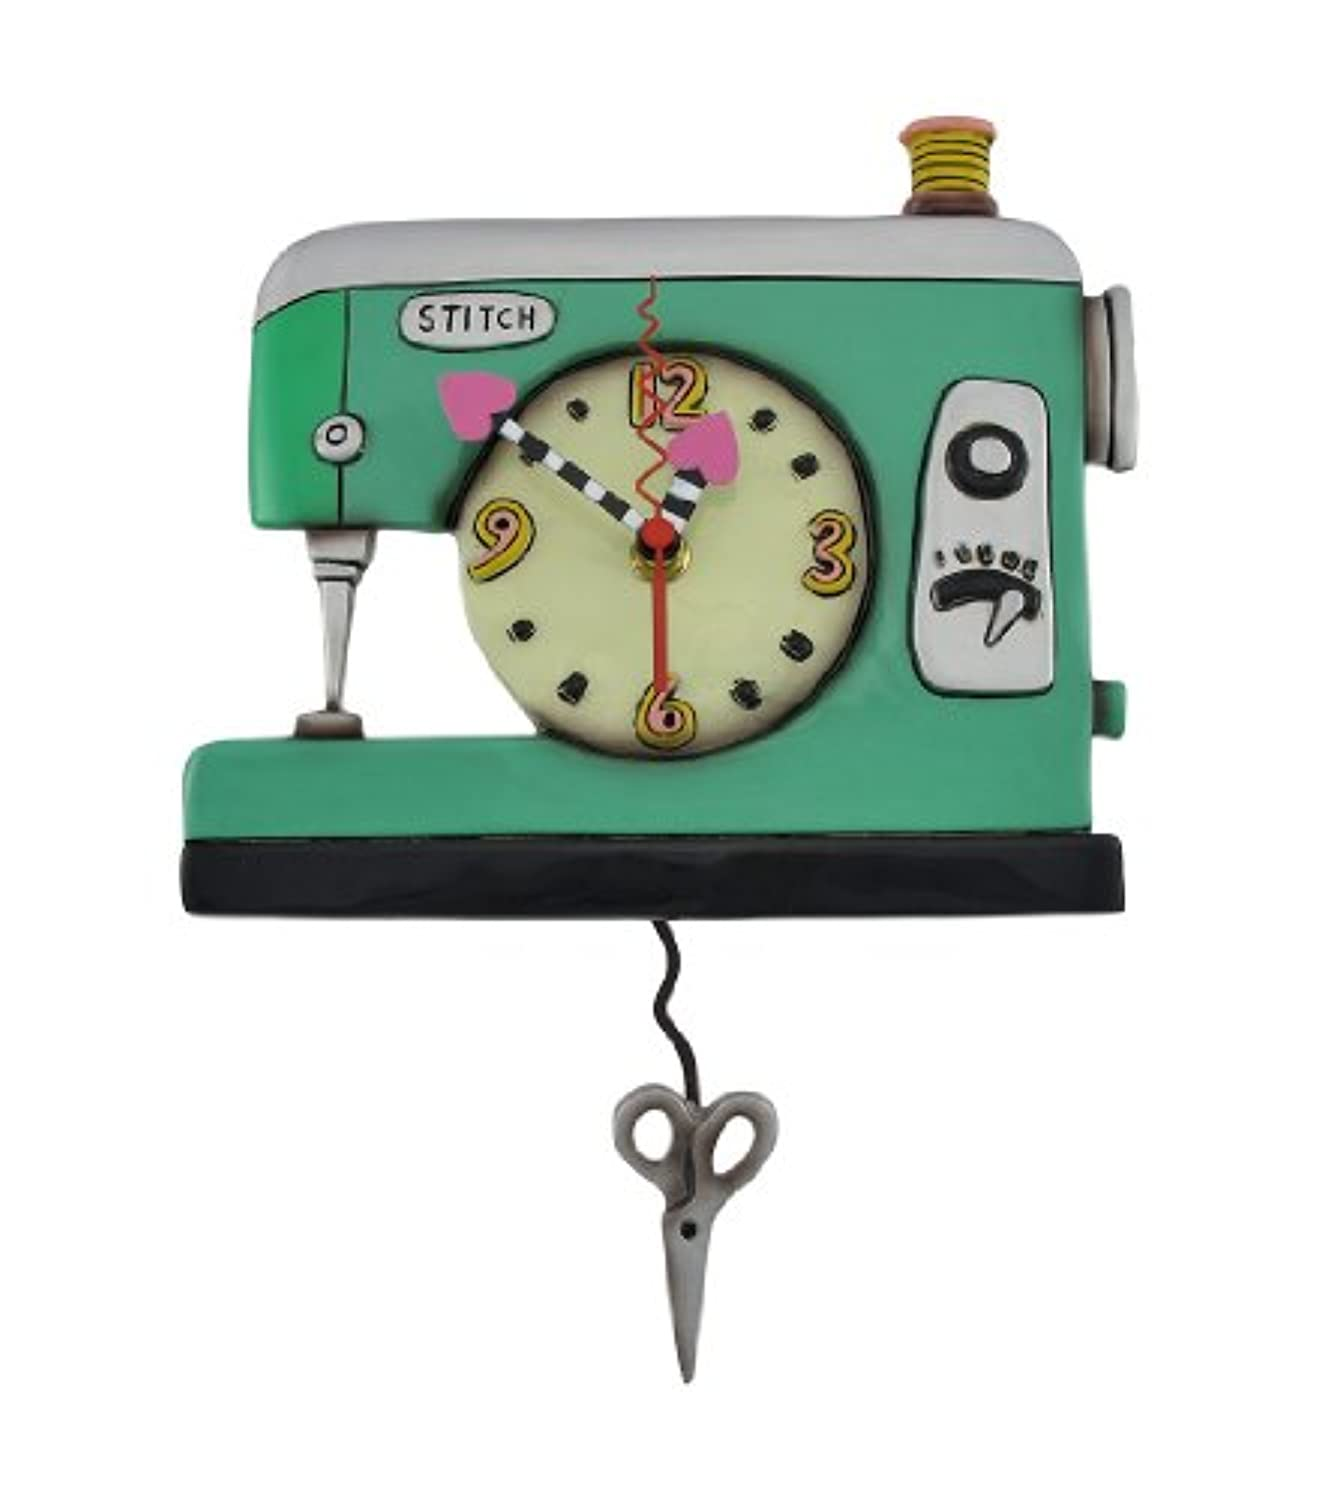 Allen Designs Stitch Sewing Machine Clock kkqstxzvlbltvi